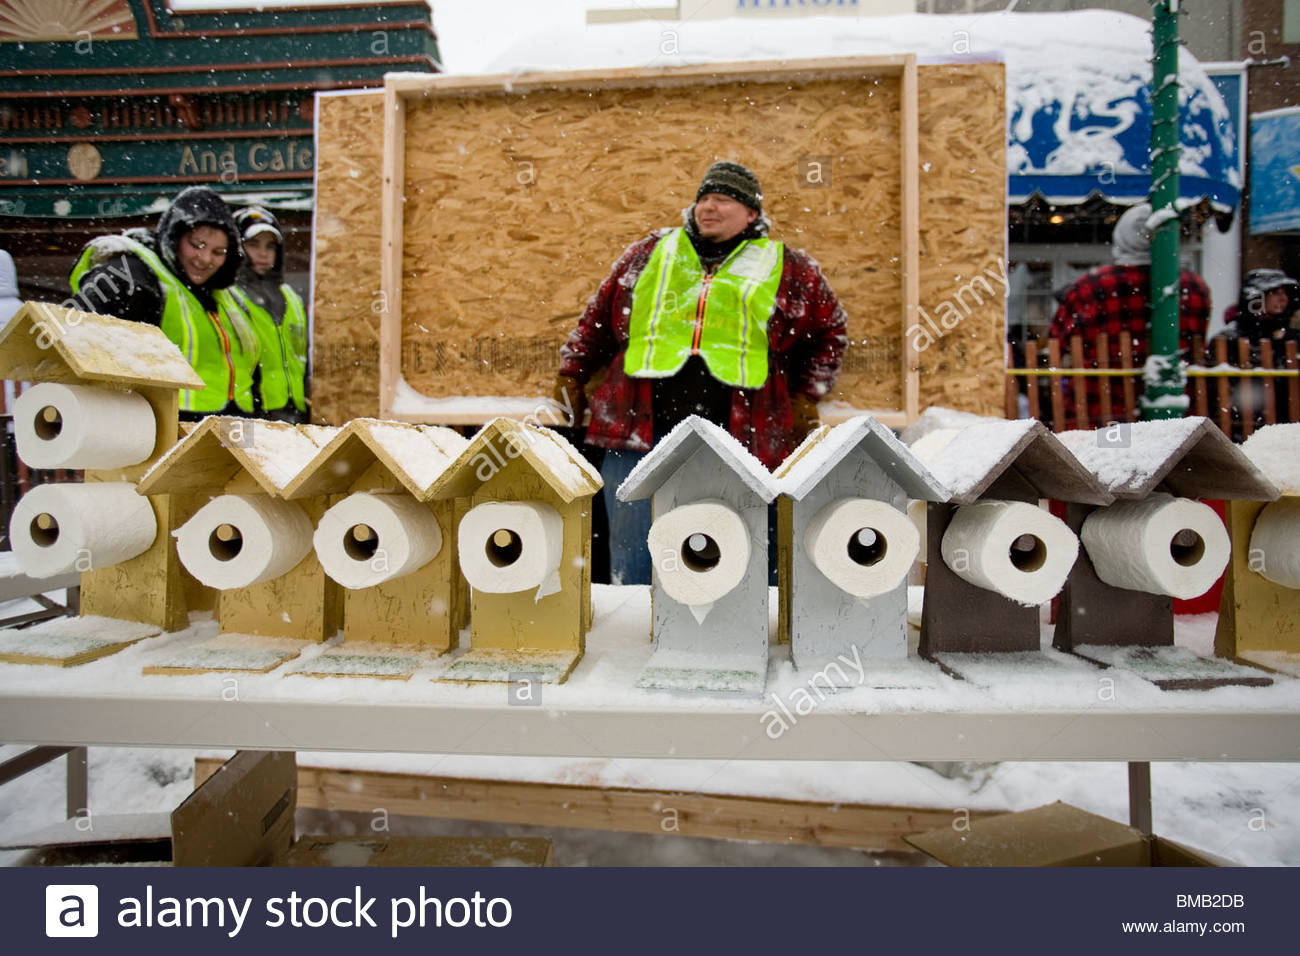 Alaska, Anchorage. Fur Rondezvous winter carnival. Outhouse races. Stock Photo